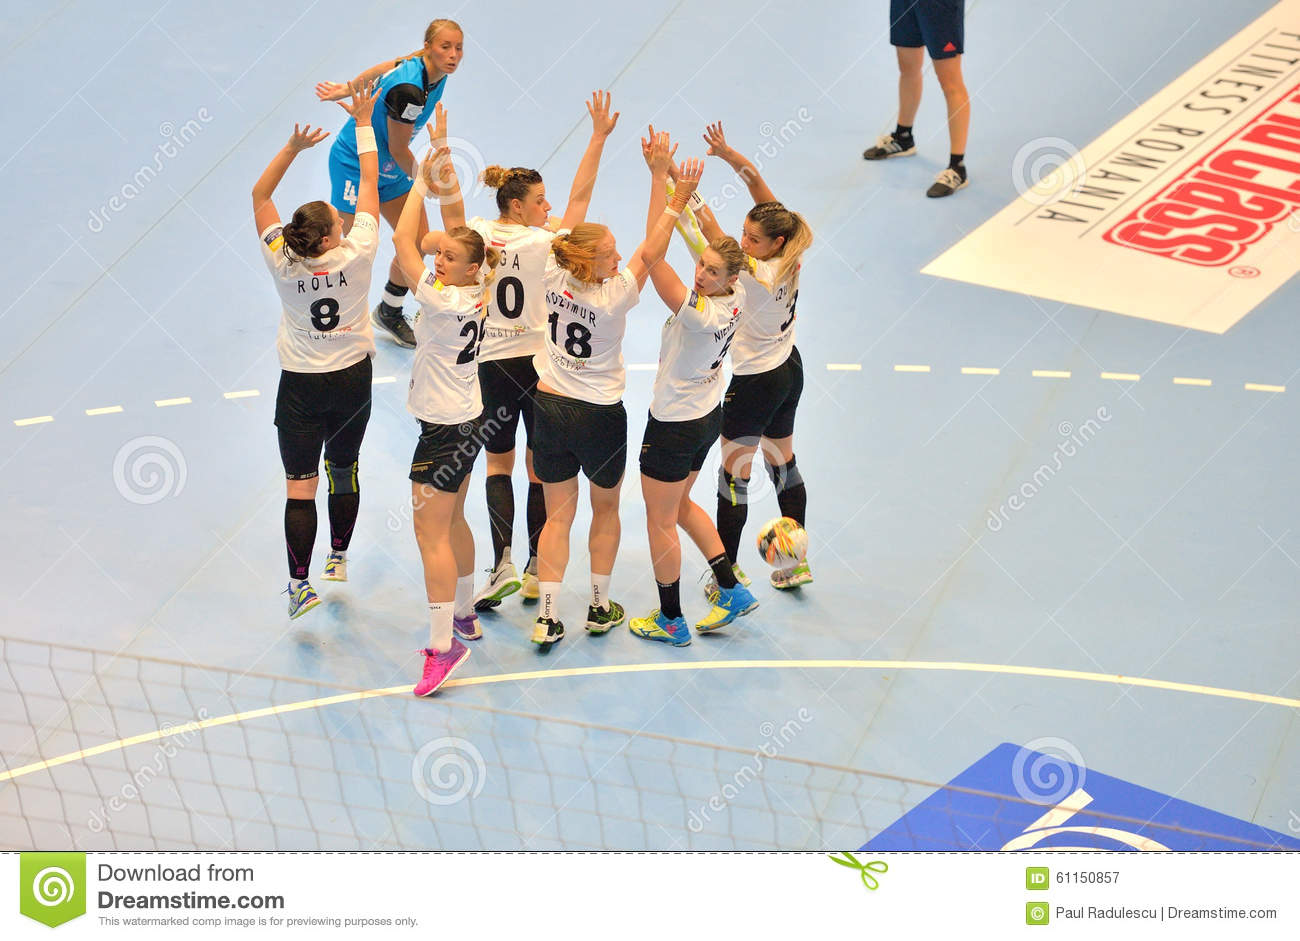 Isabelle Gullden, player of CSM Bucharest attacks during the match with MKS Selgros Lublin